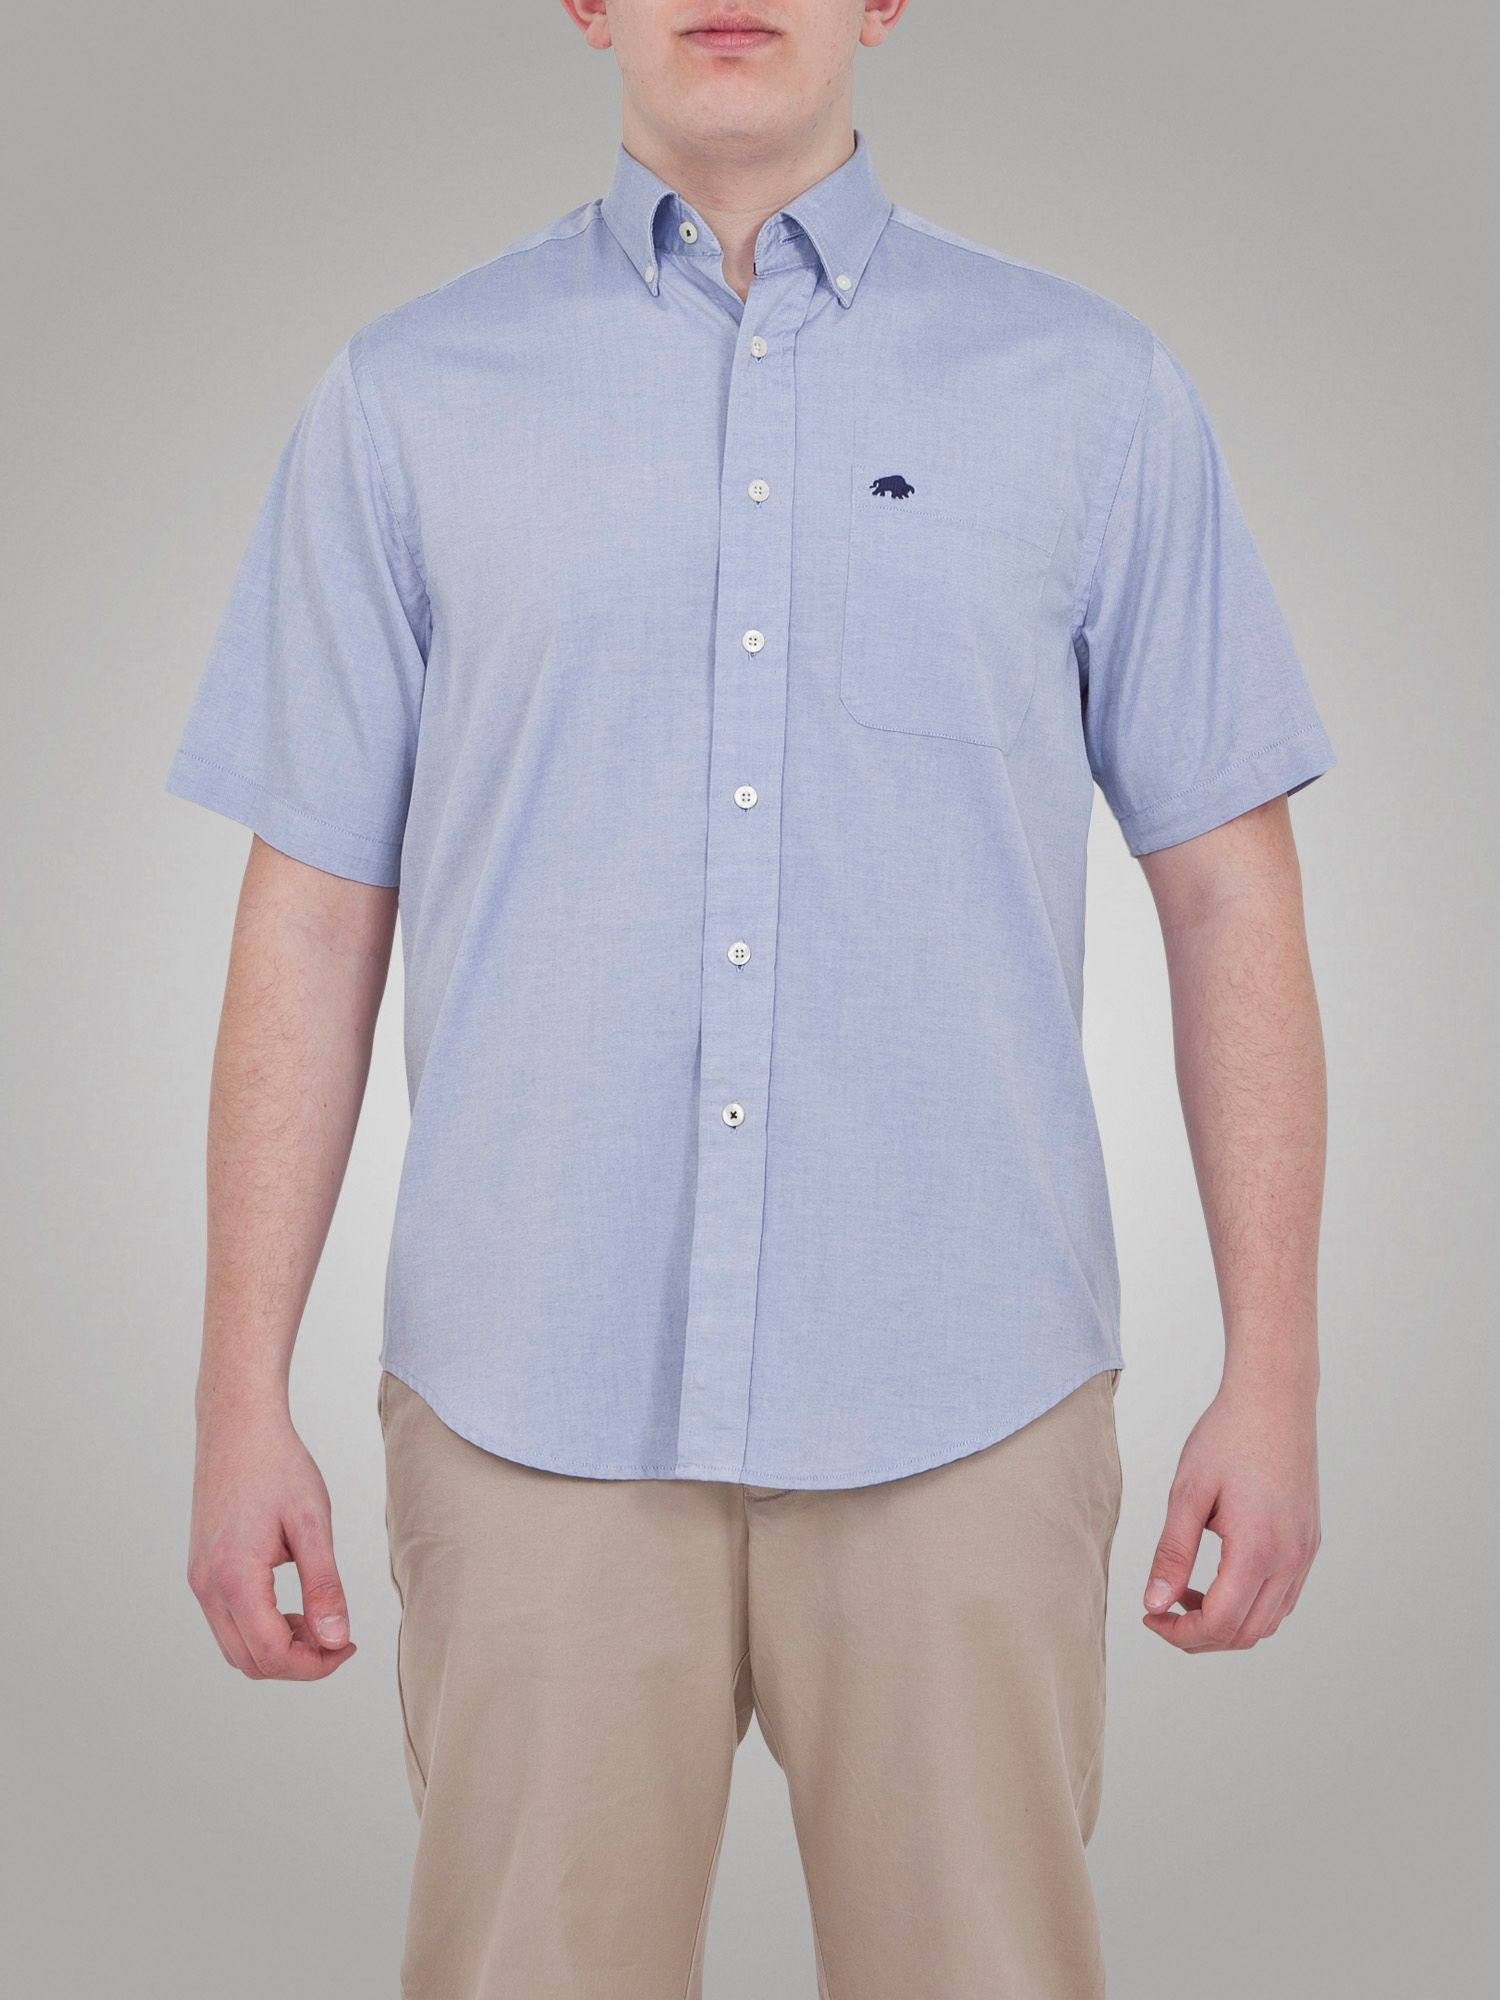 Raging bull big and tall ss oxford shirt in blue for men for Big and tall oxford shirts